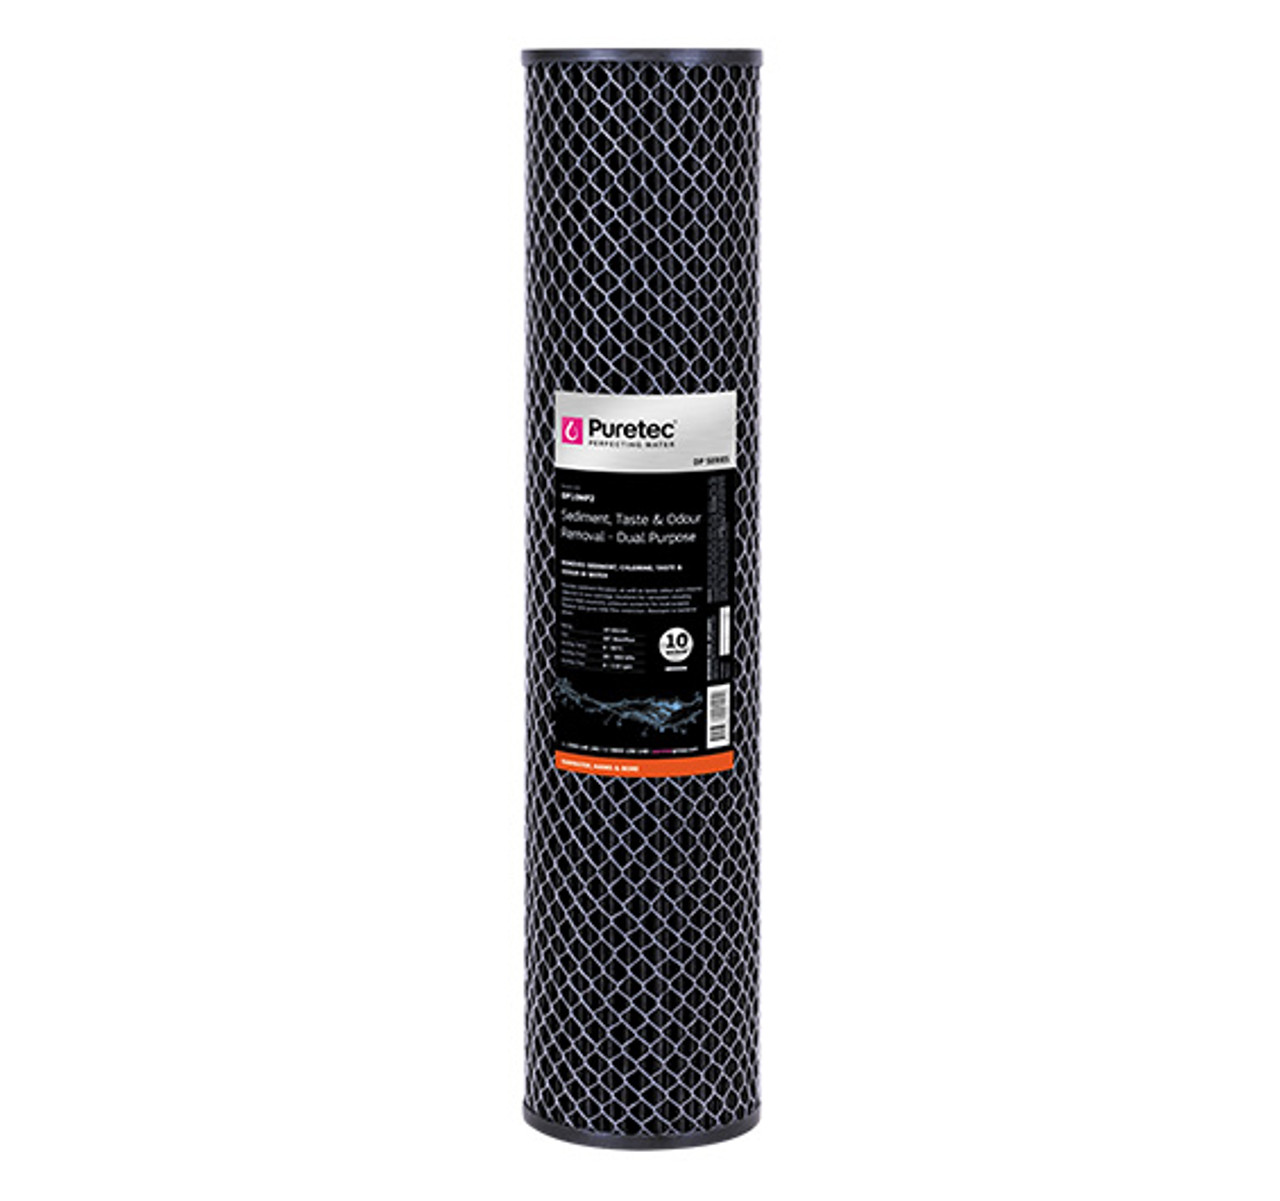 DP10MP2 dual purpose carbon filter cartridge